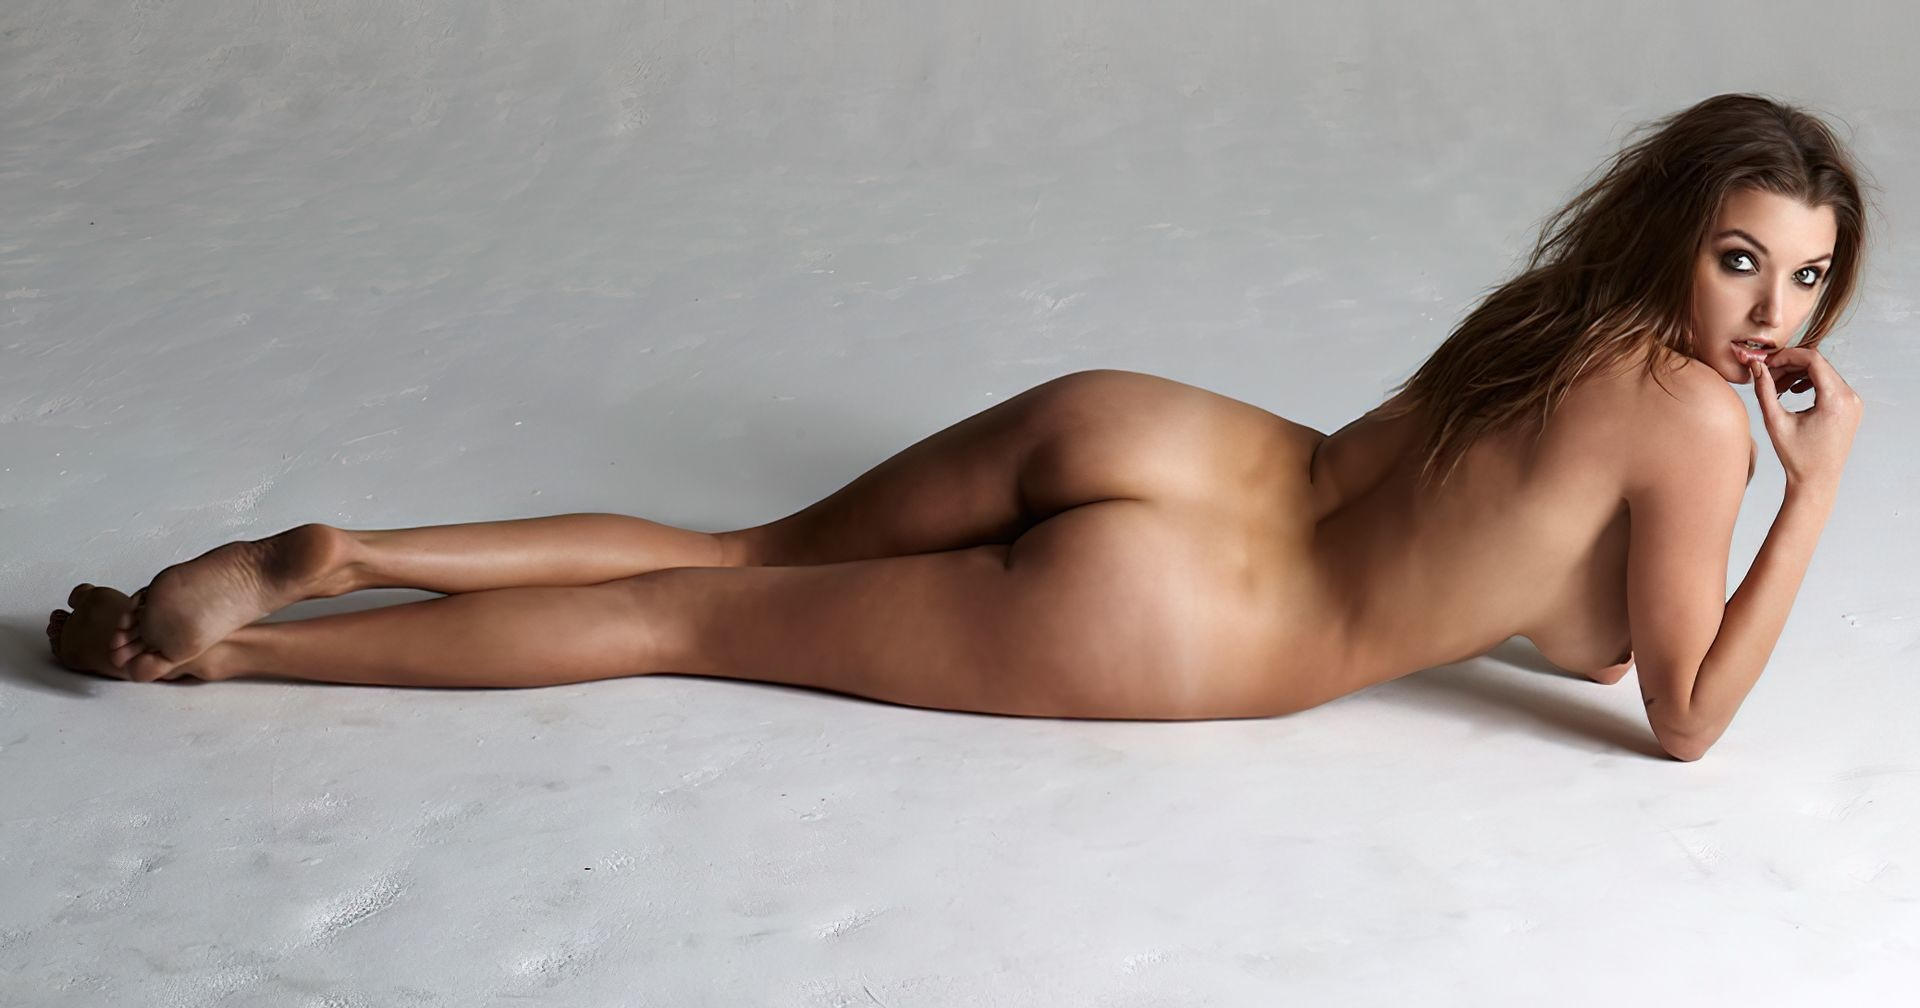 fappening pics of nude models